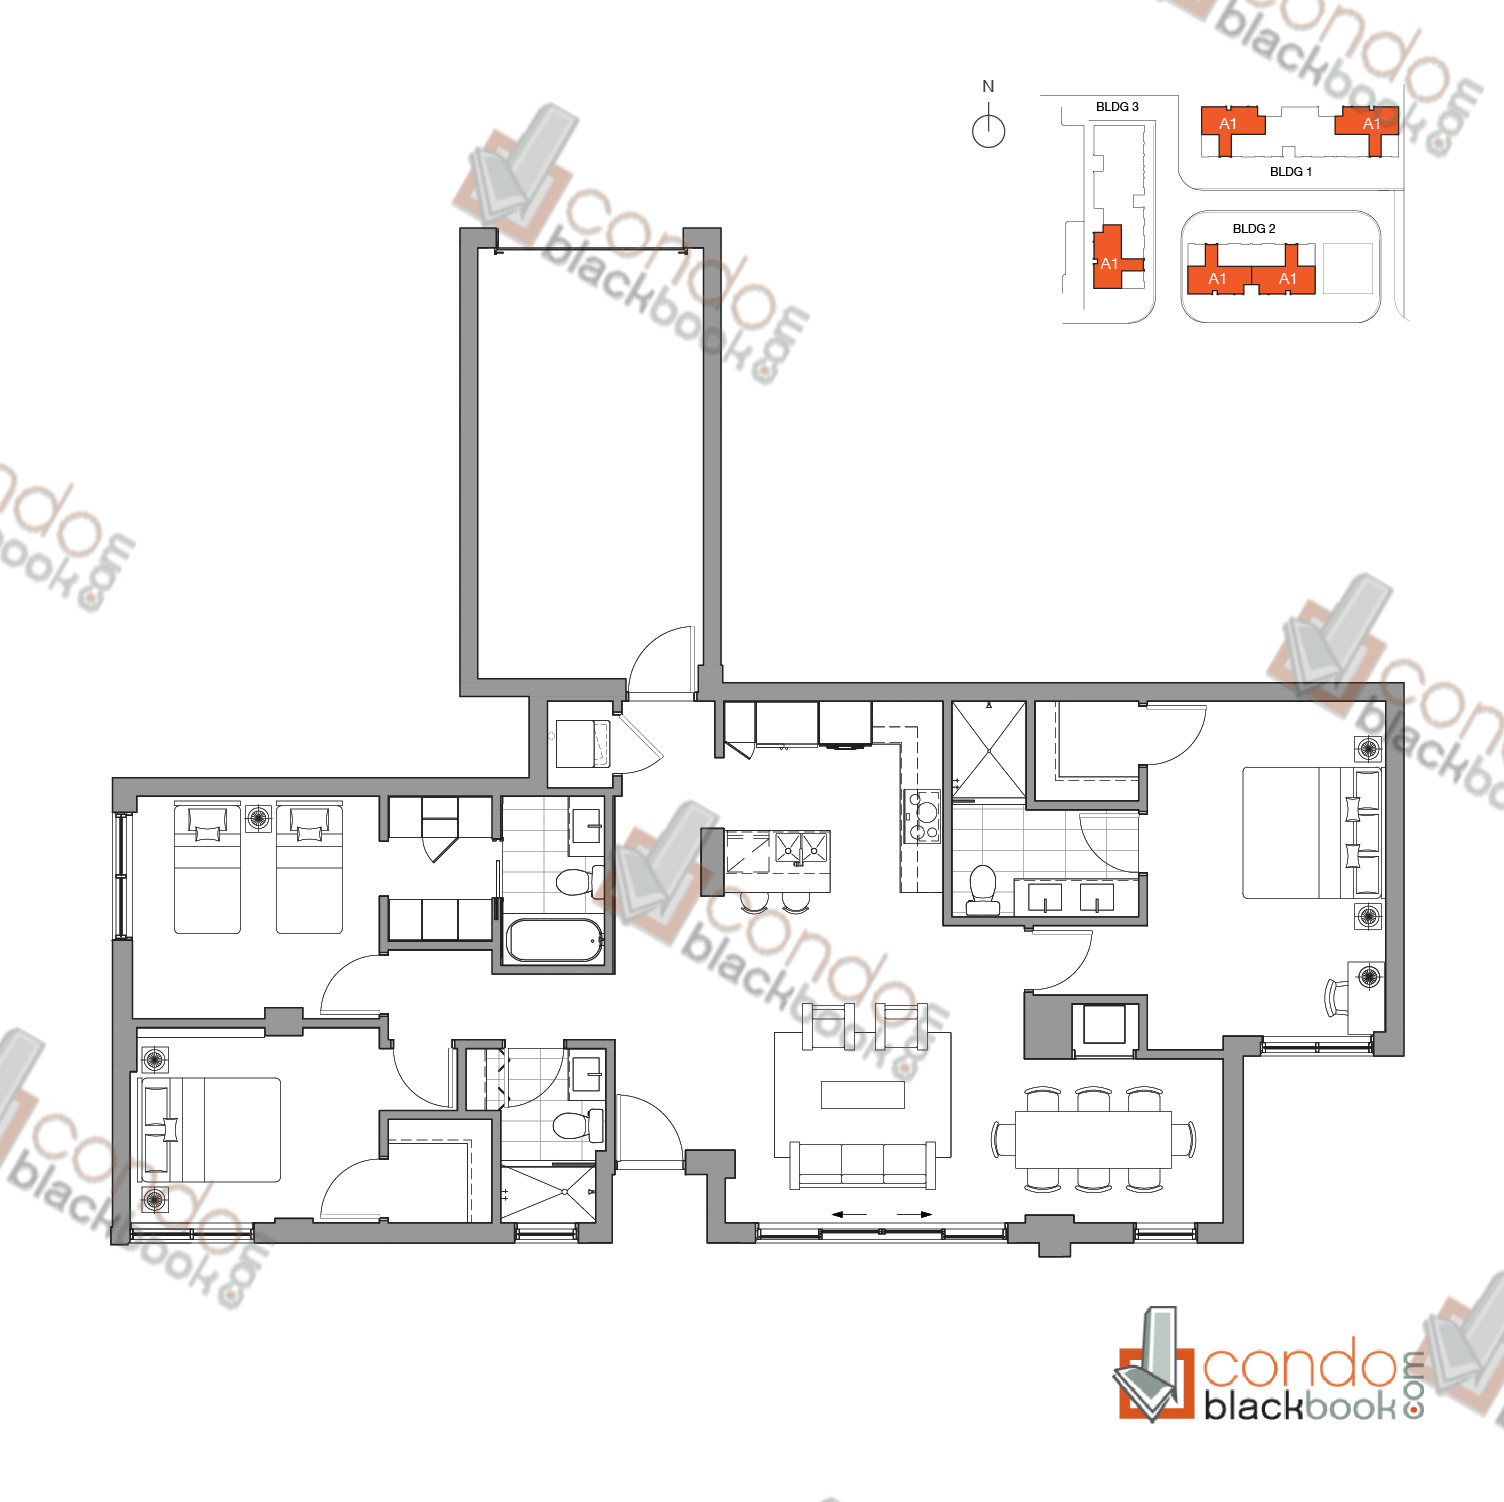 Floor plan for One Bay Edgewater Miami, model Resindence A1, line 103, 203, 208, 303, 313, 3/3 + Indoor garage bedrooms, 1,475 sq ft